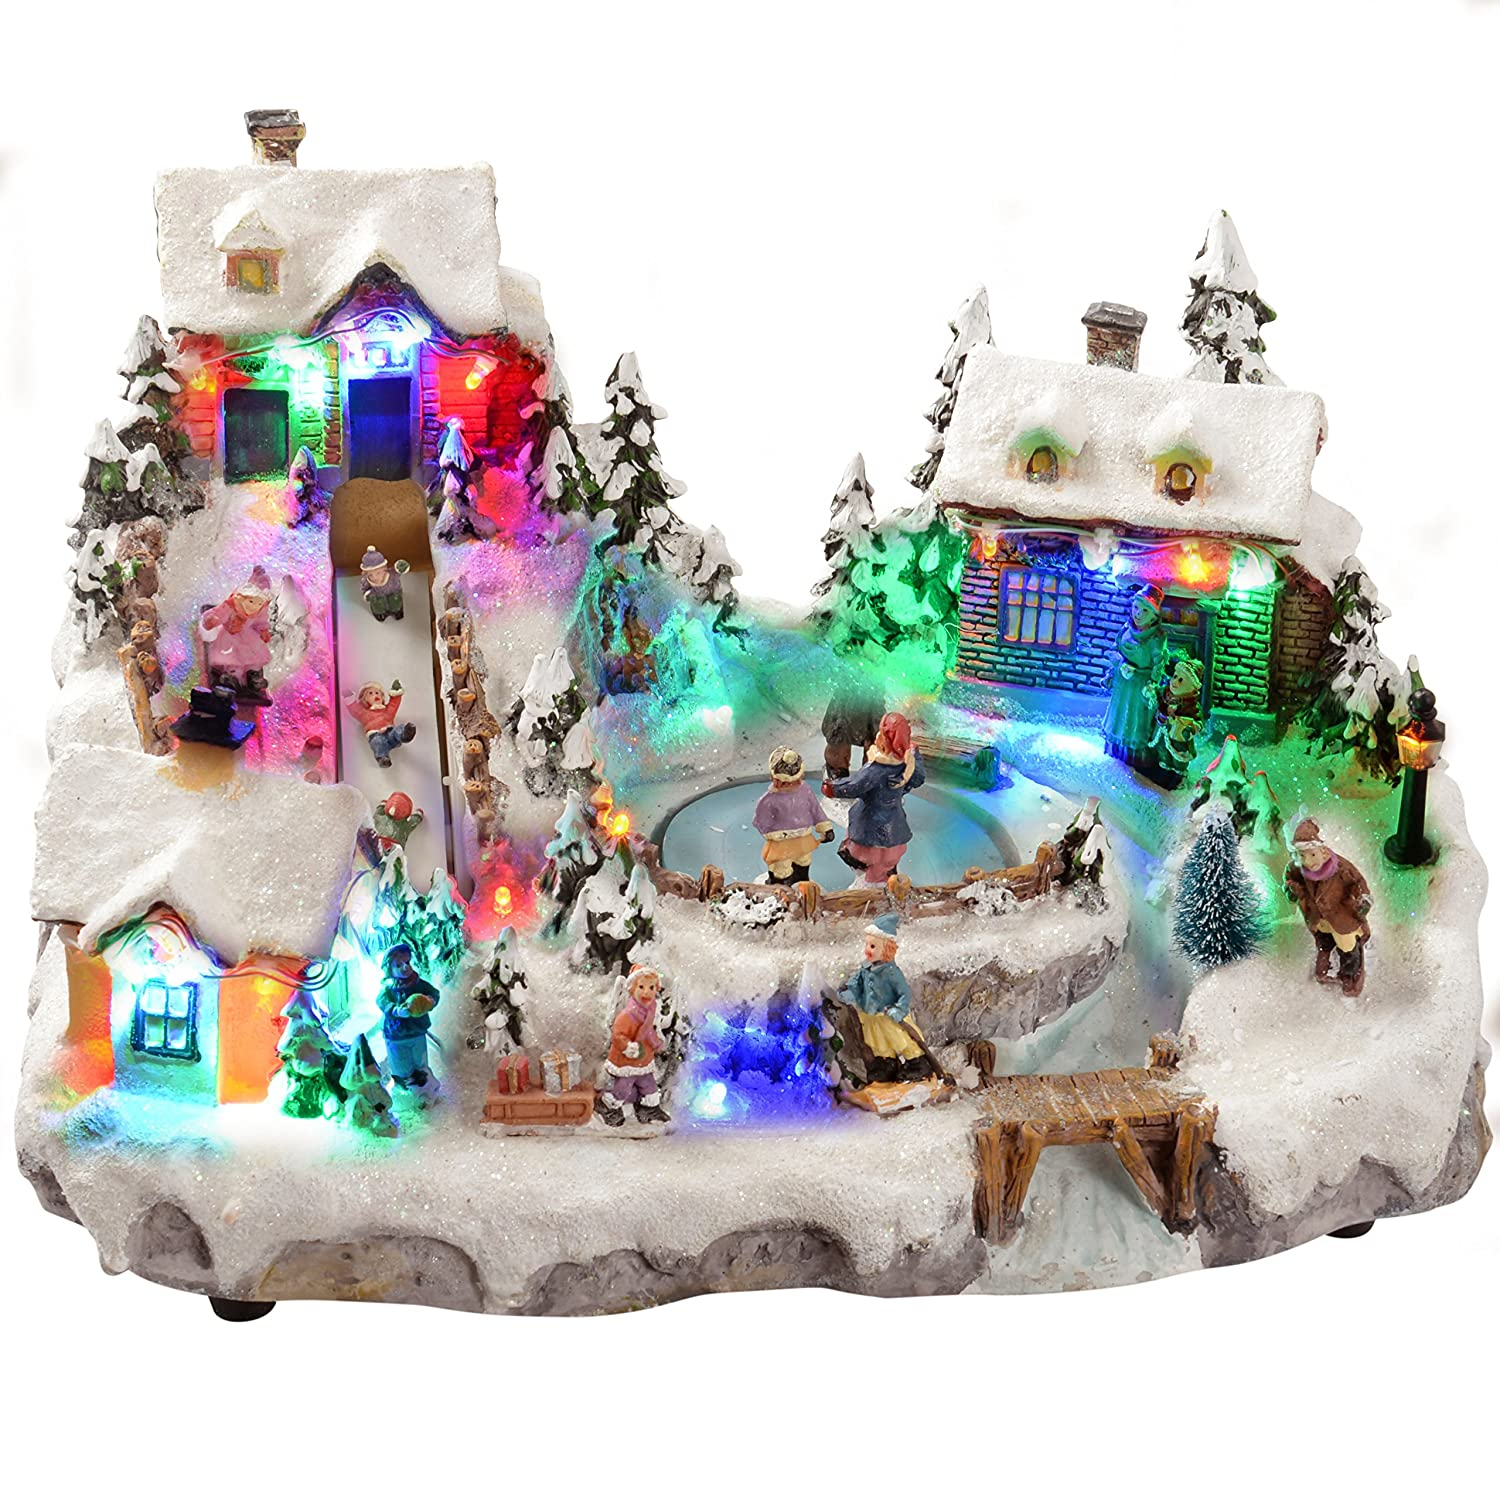 WeRChristmas Animated Christmas Village with Moving Ice Rink and ...